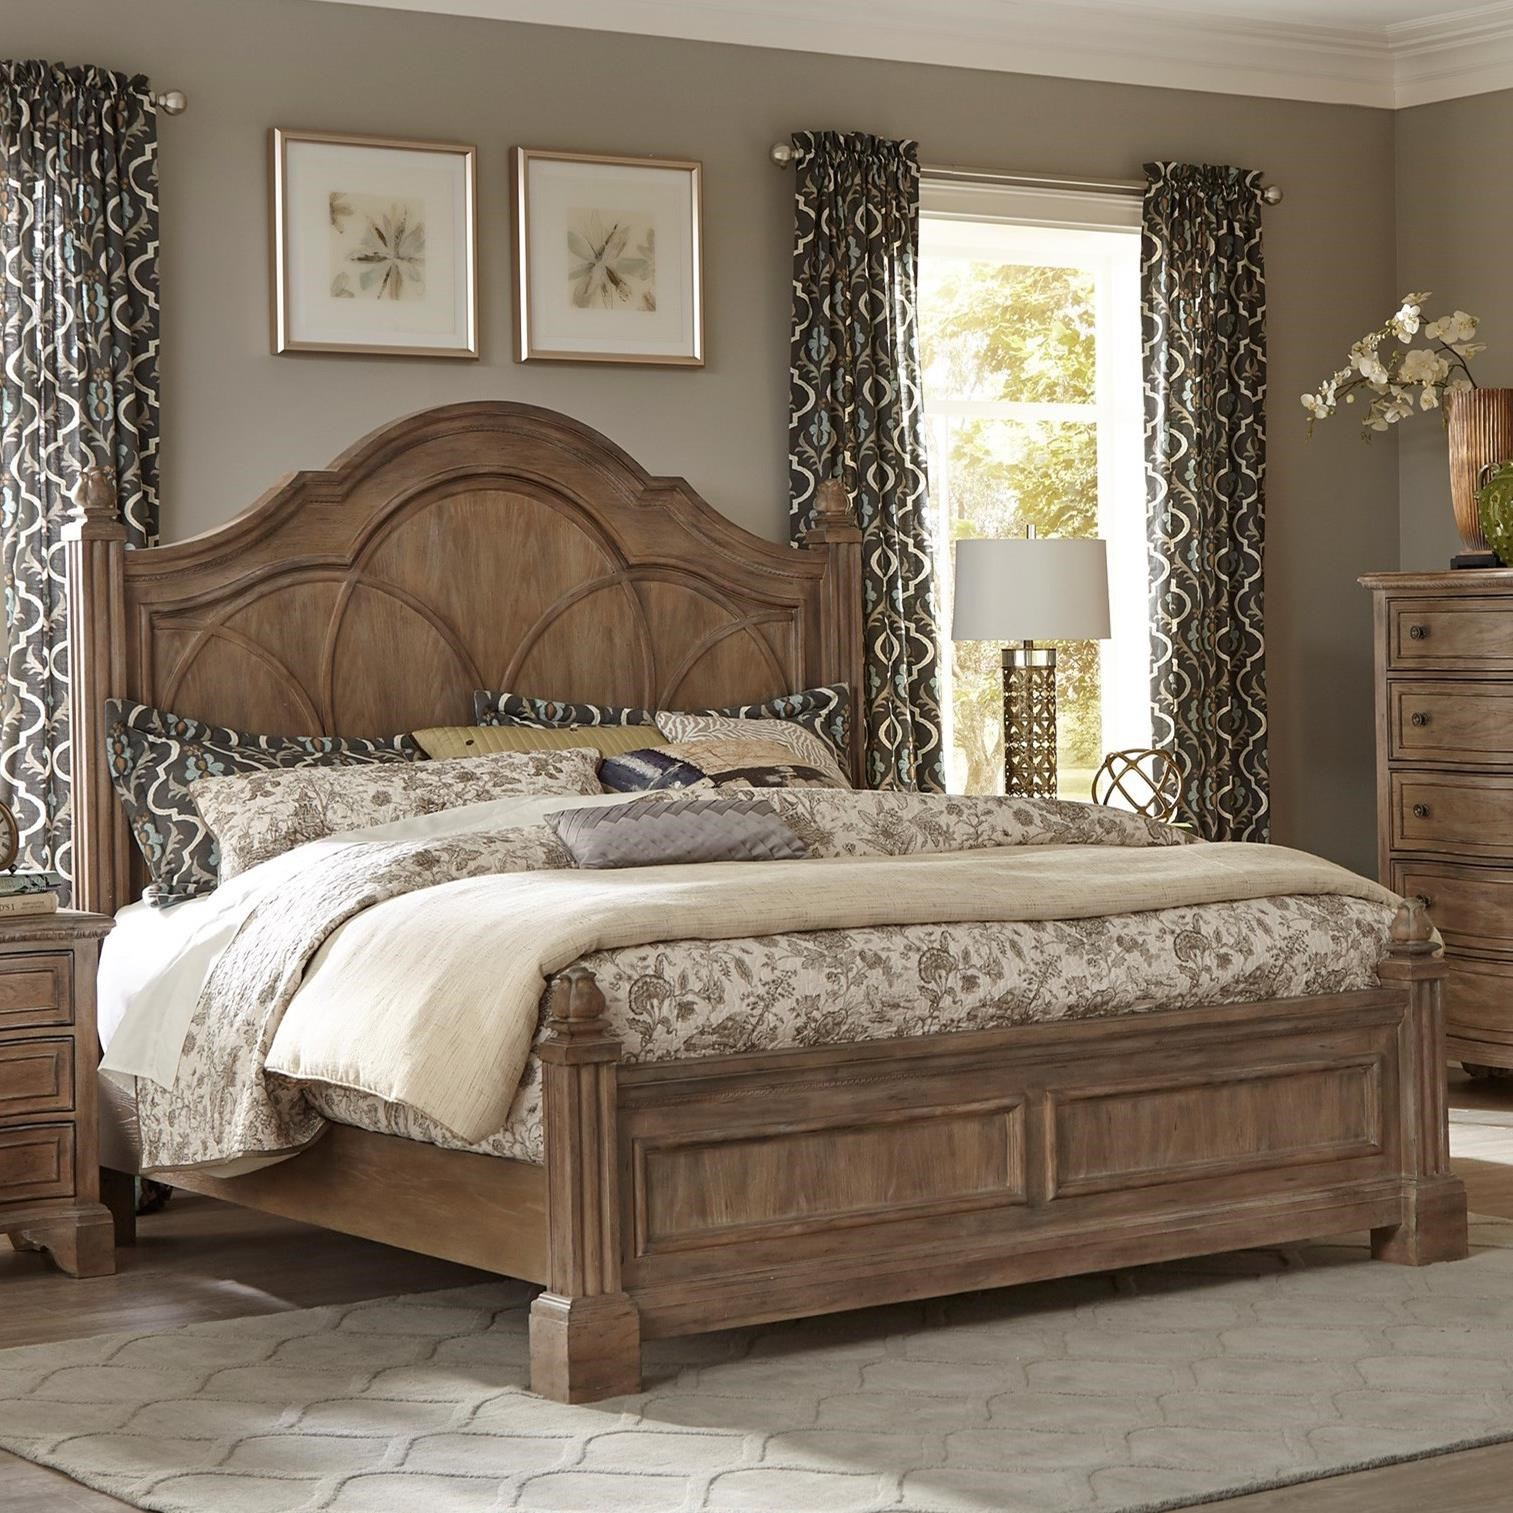 Trisha Yearwood Home Collection By Klaussner Jasper County 791 366 Kbed Jasper King Poster Bed Hudson S Furniture Panel Beds